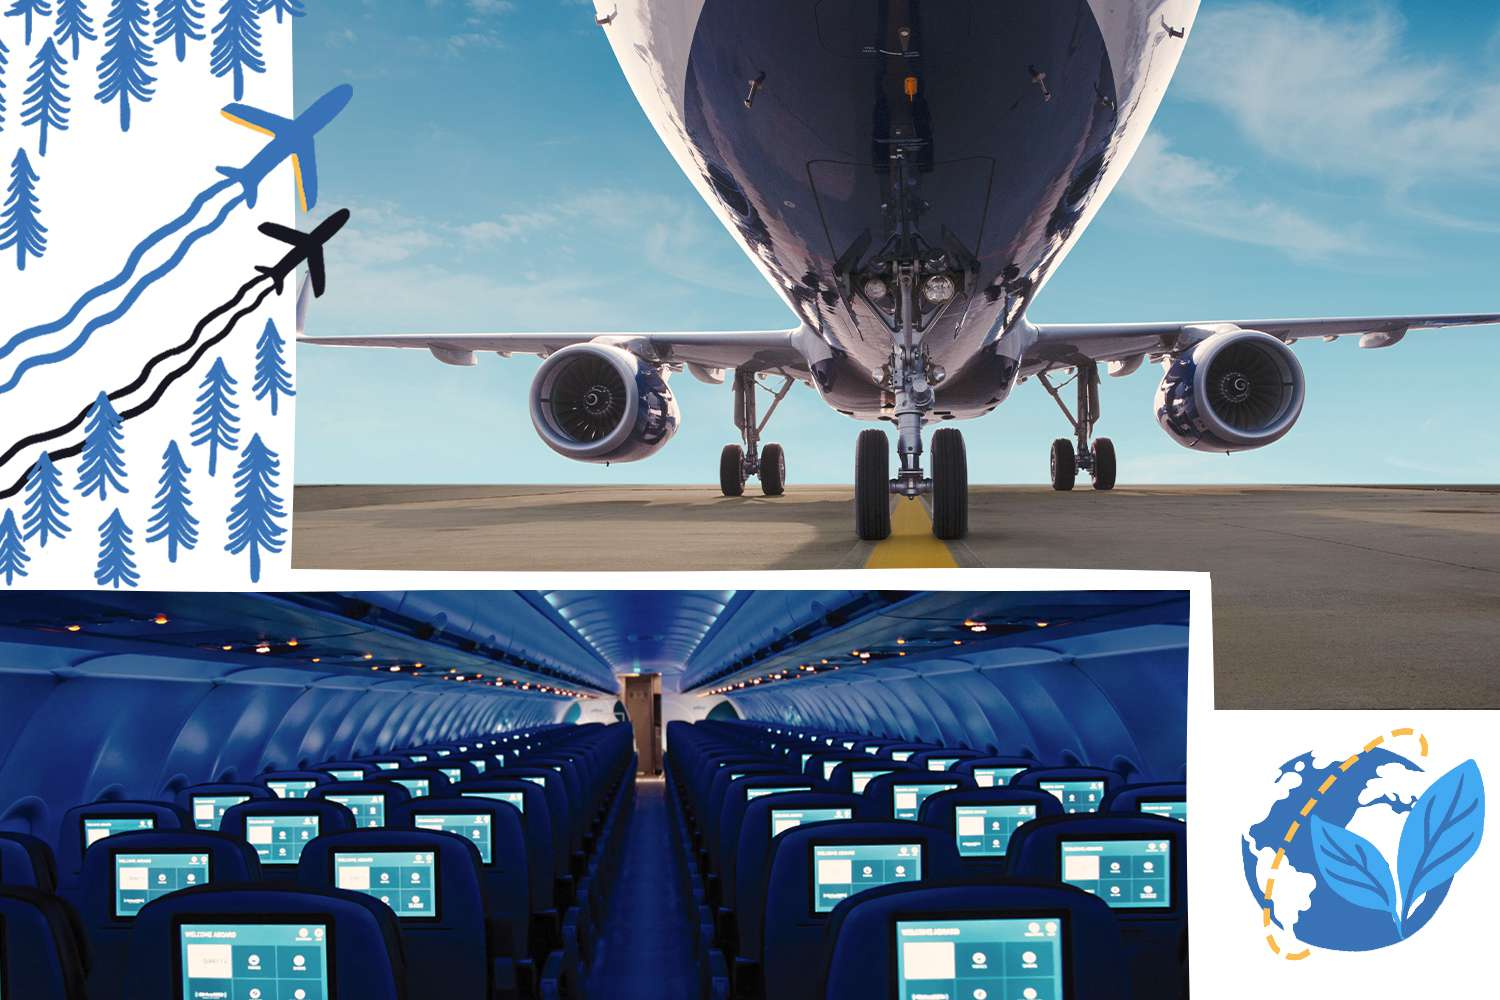 Collage of images and illustrations depicting Jetblue plane's